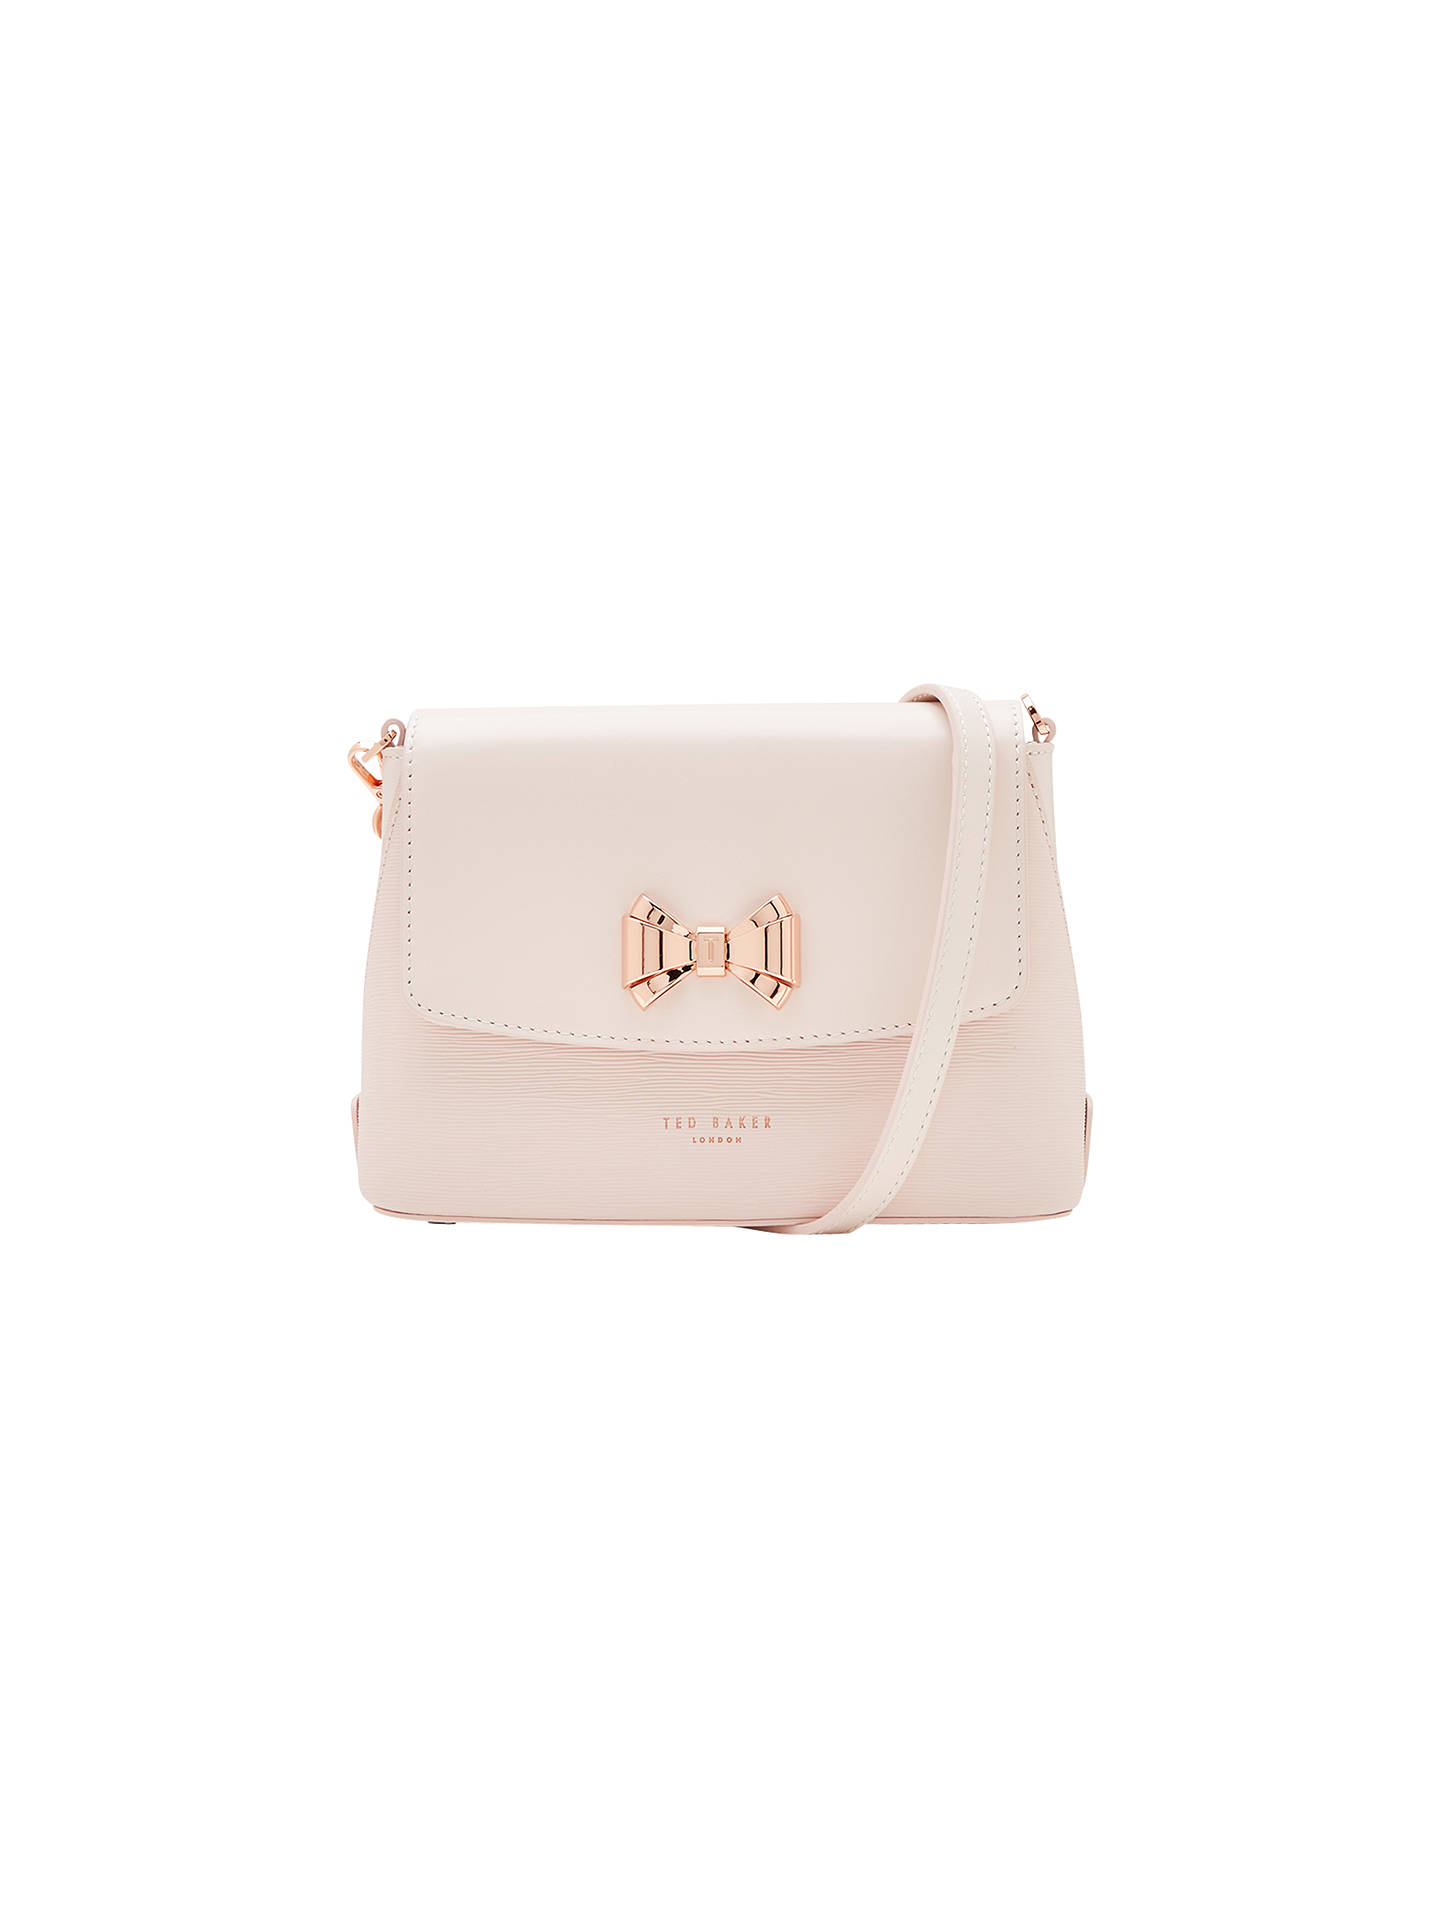 ee20c316f4fd Ted Baker Tessi Curved Bow Leather Across Body Bag at John Lewis ...